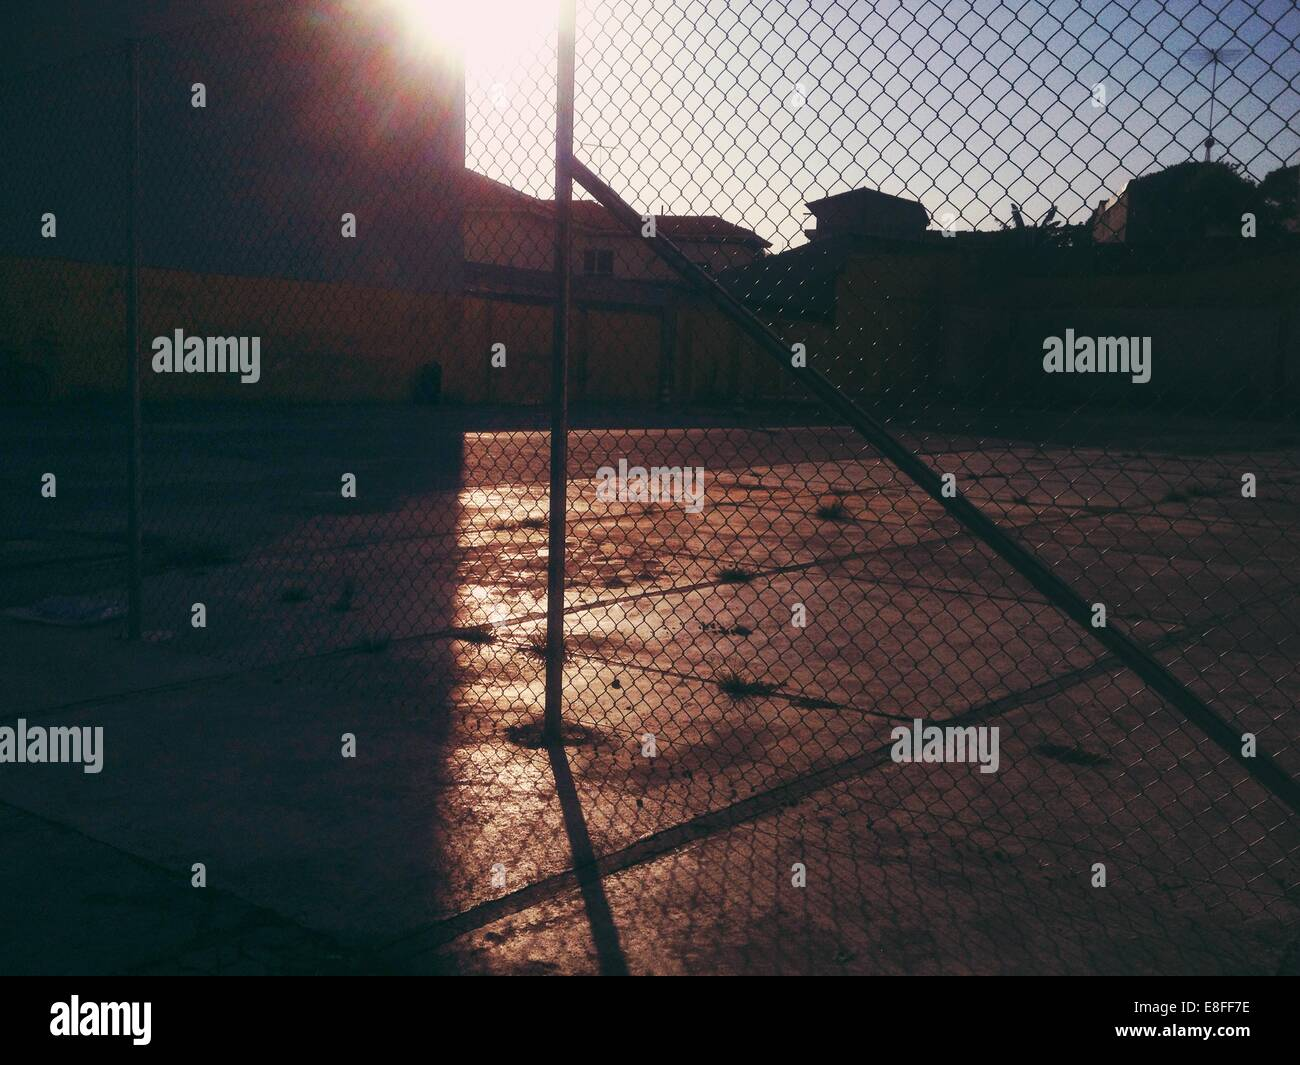 Fence at Sunset - Stock Image